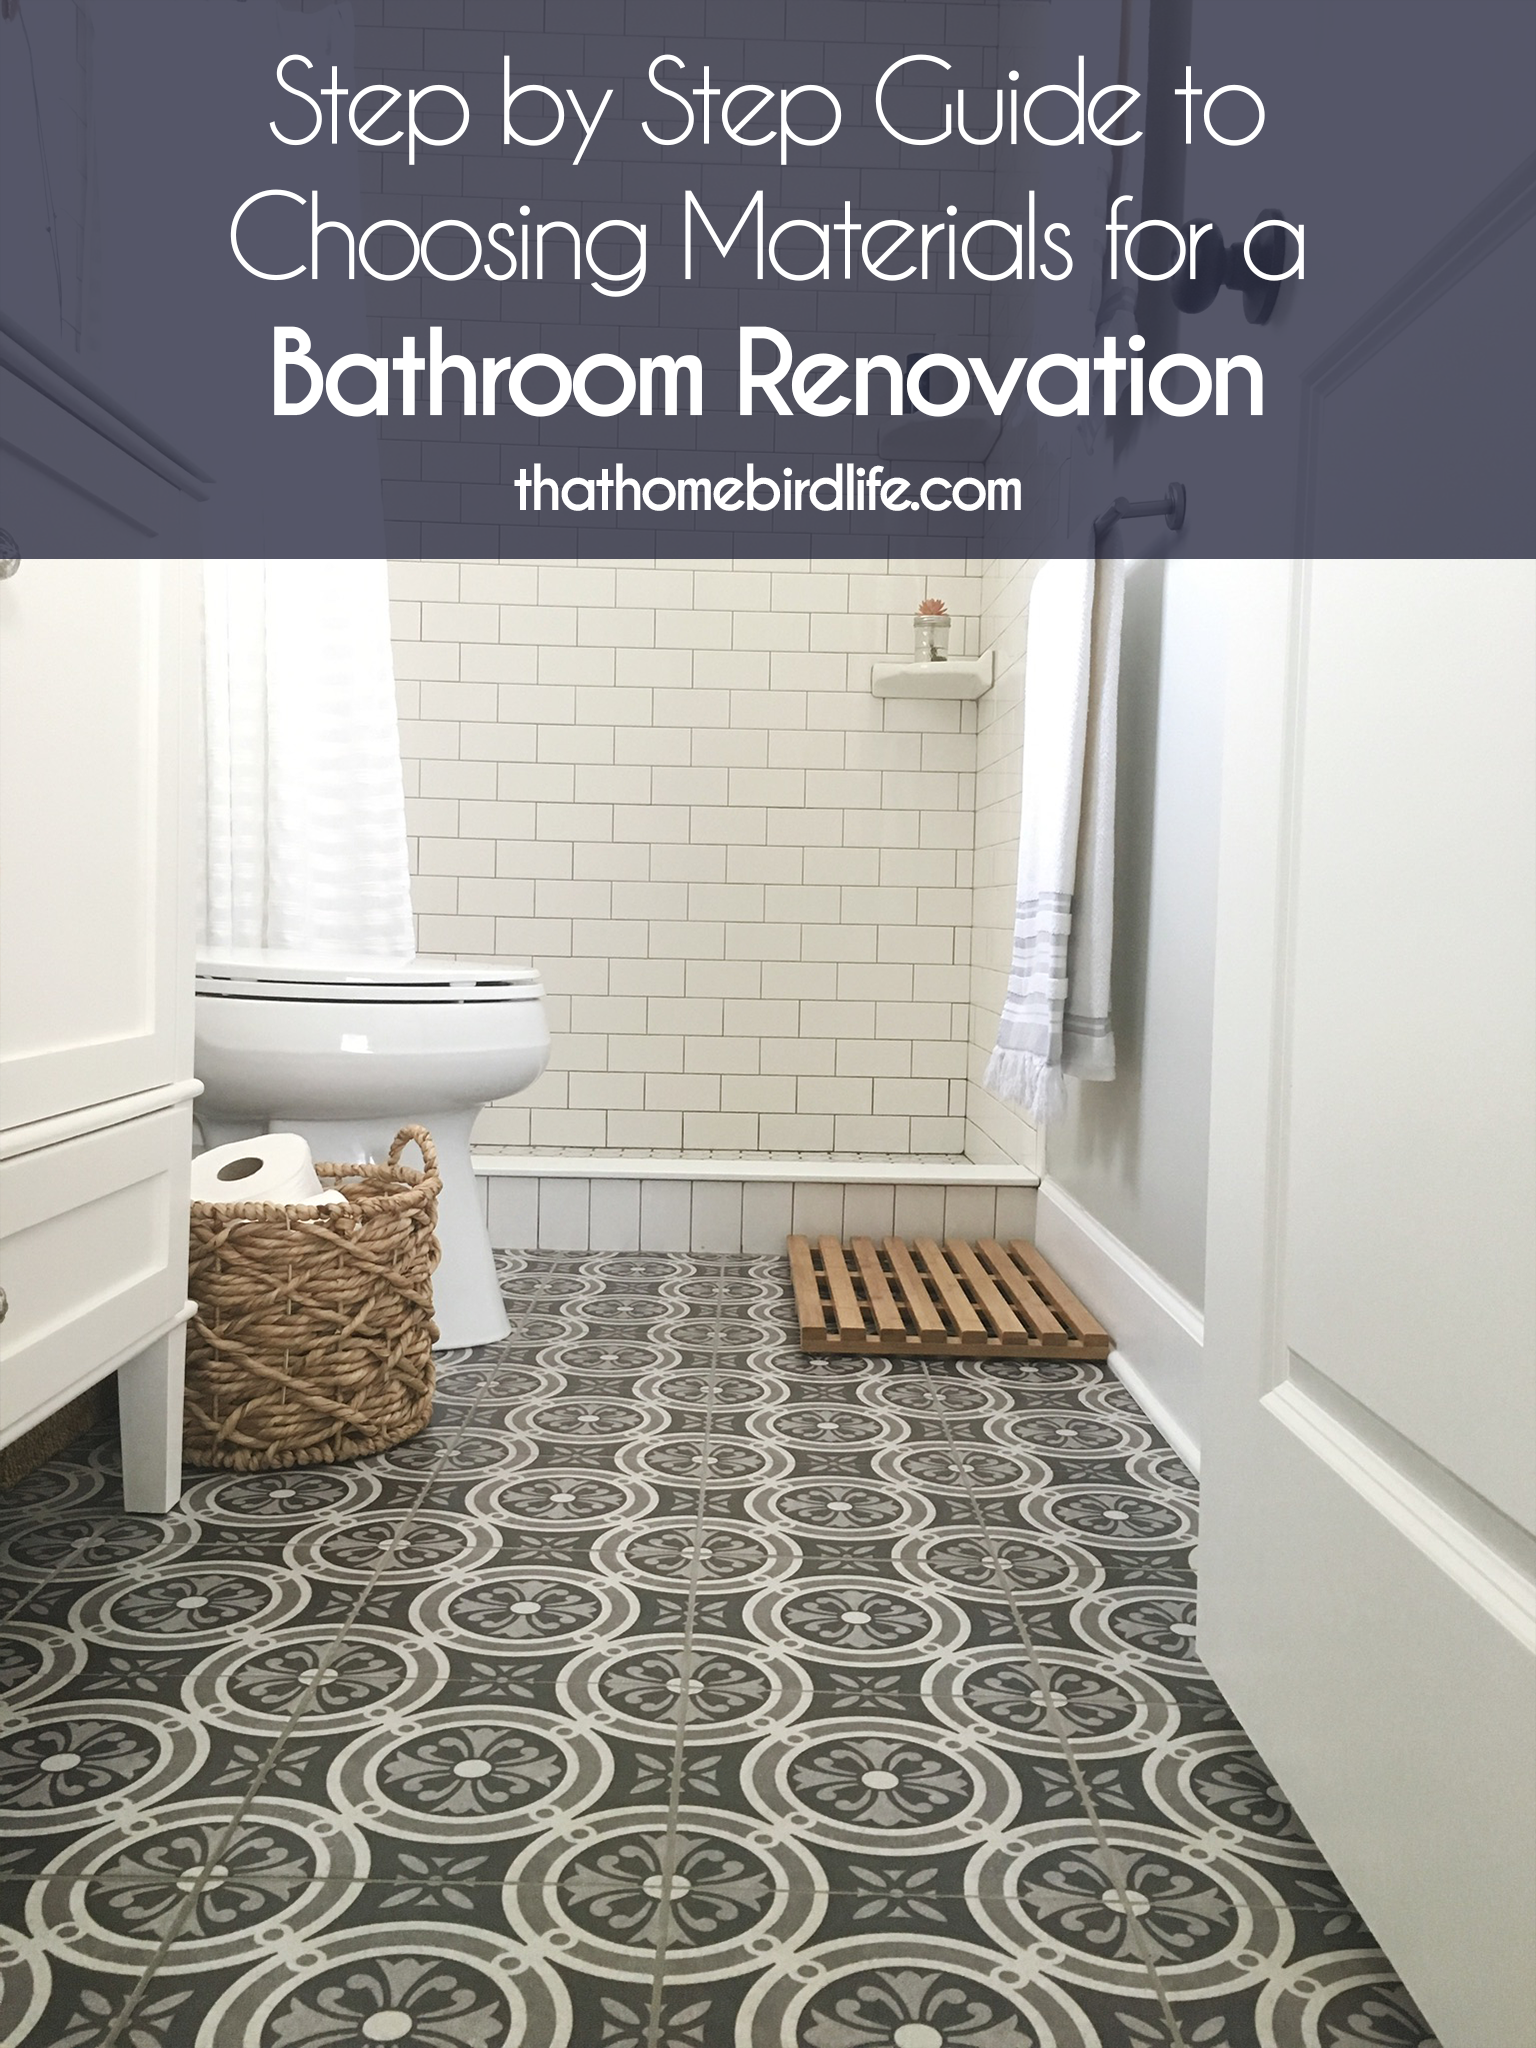 Step By Step Guide To Choosing Materials For A Bathroom Renovation That Homebird Life